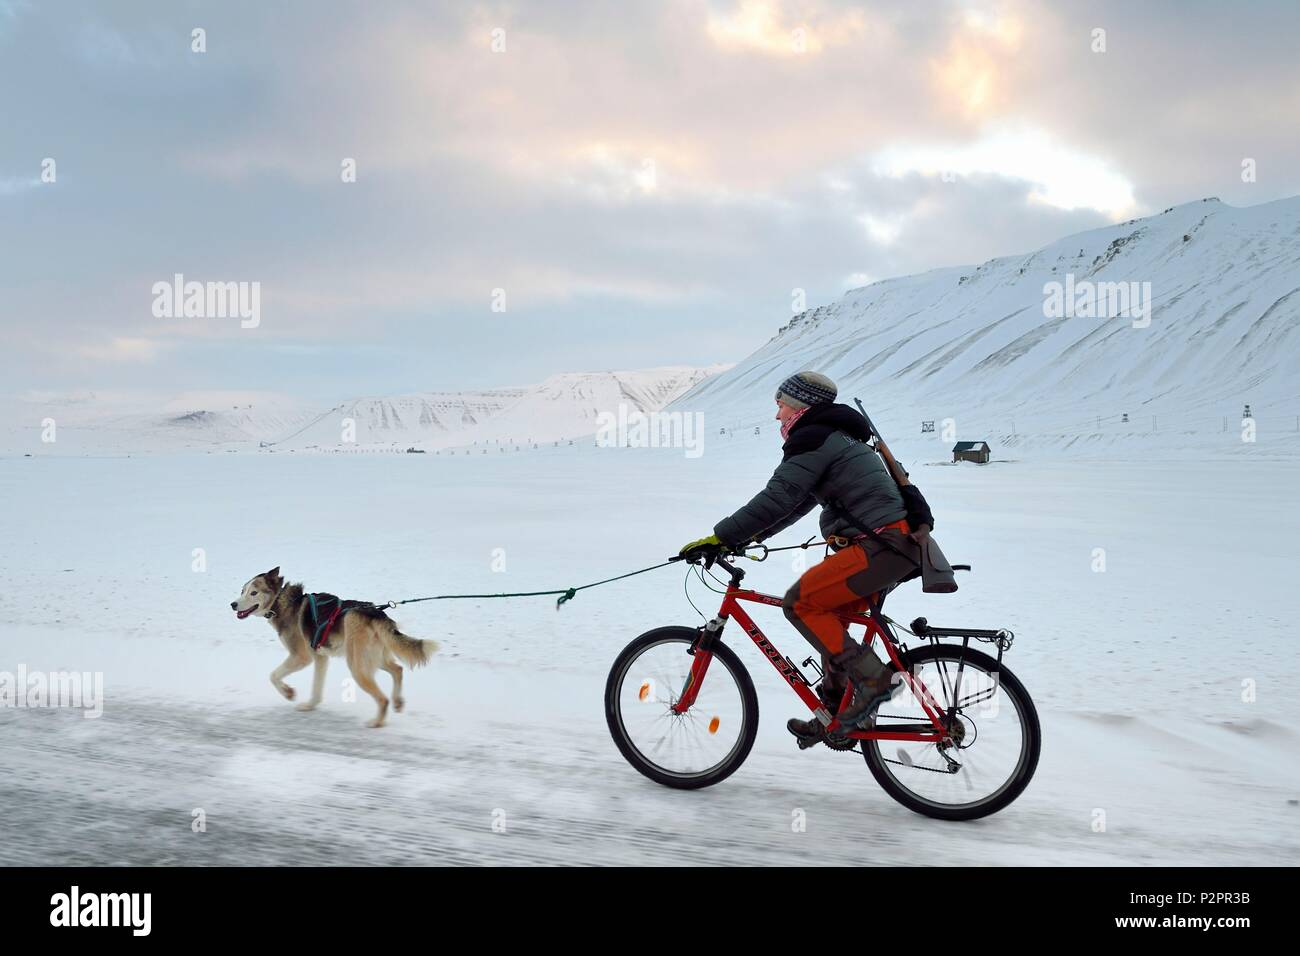 Norway, Svalbard, Spitzbergen, Adventdalen valley near Longyearbyen, dog walk riding a bicycle with a rifle to guard against the possible danger of polar bears - Stock Image